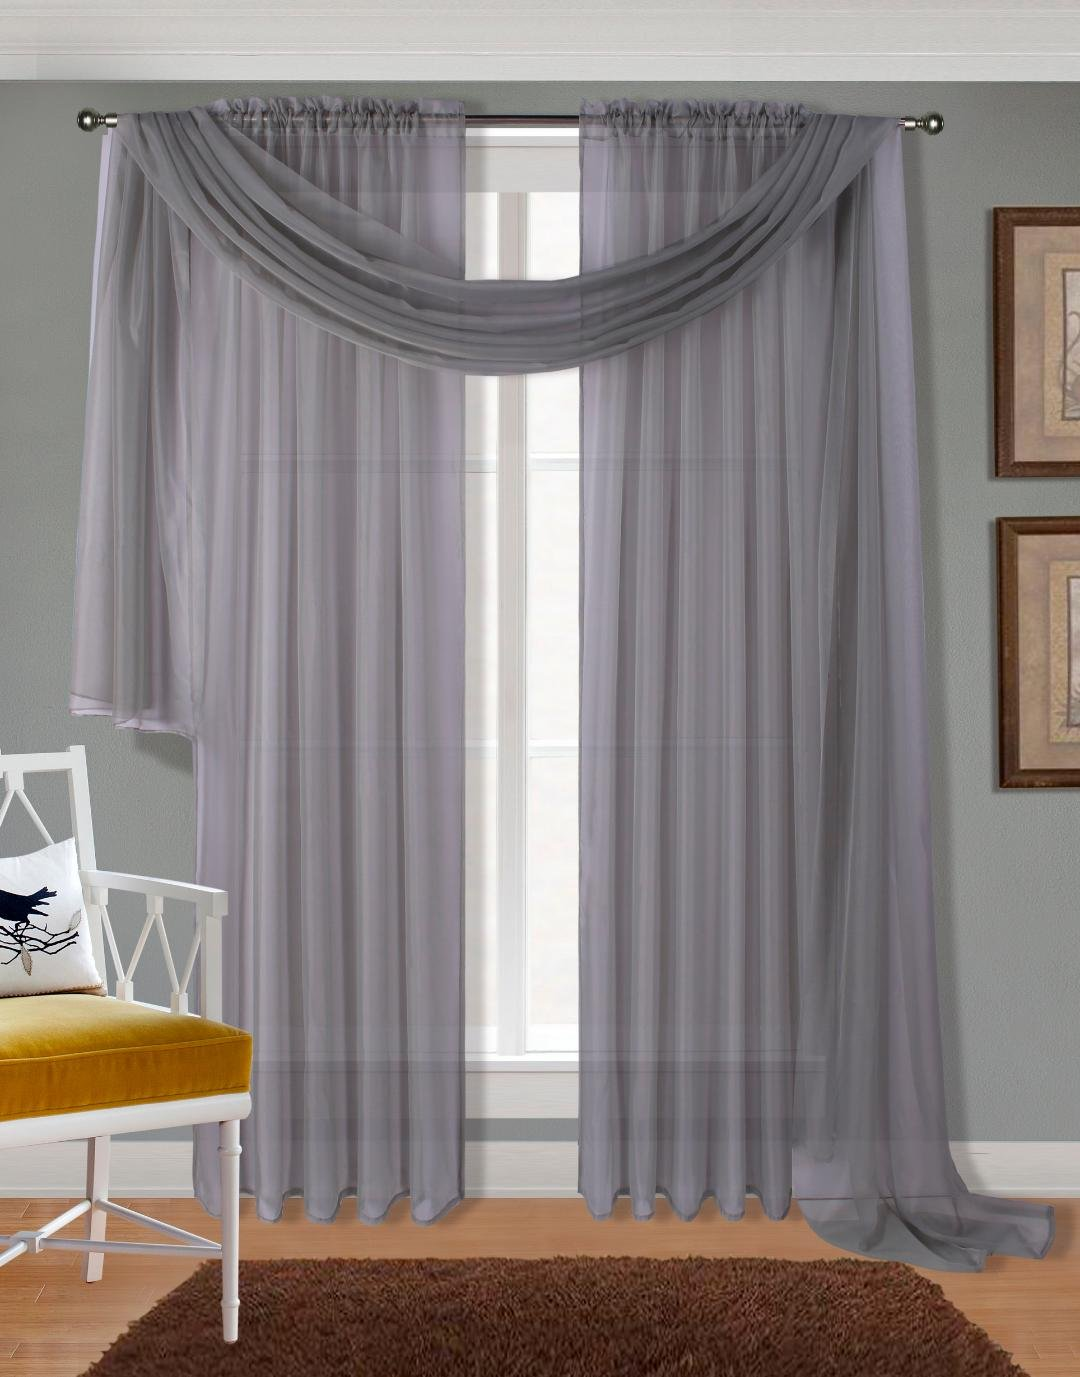 """Luxury Discounts 3 Piece Sheer Voile Curtain Panel Drape Set Includes 2 Panels and 1 Scarf (108"""" Length, Gray)"""